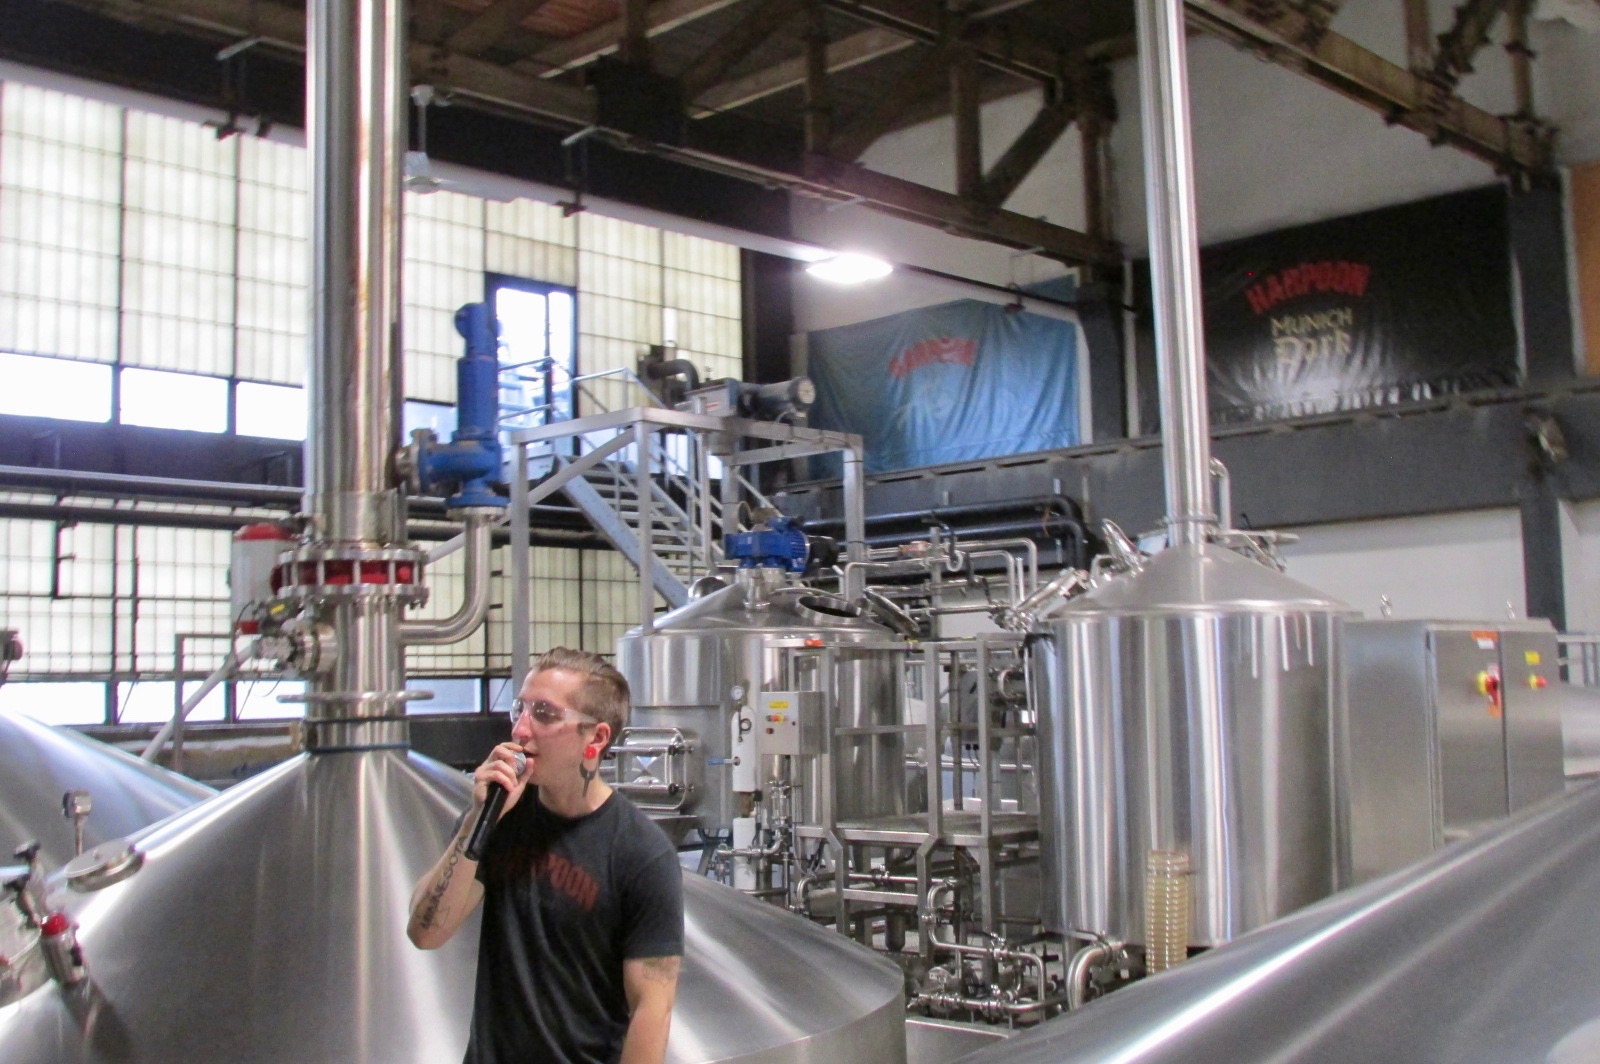 Employee-Led Tour of Harpoon Brewery